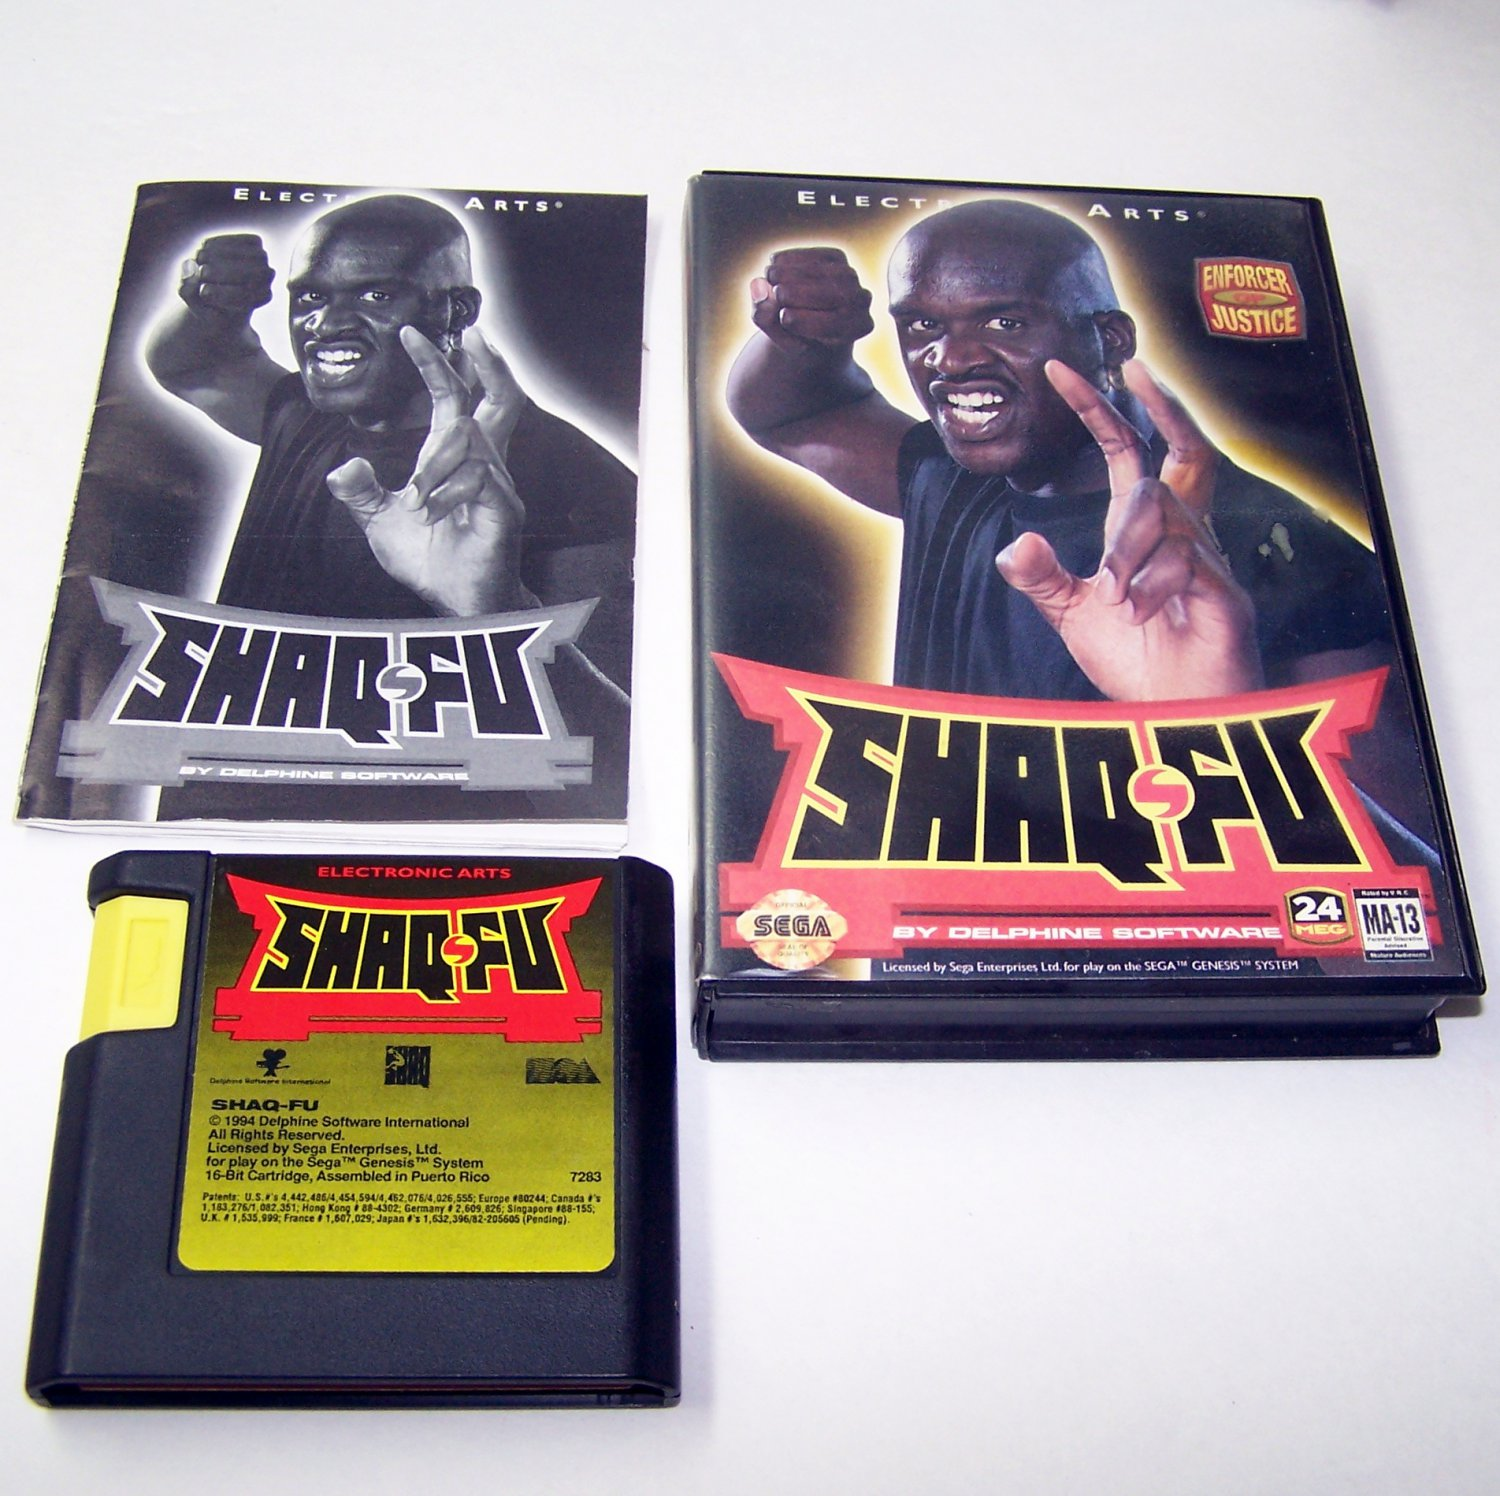 Shuq Fu Enforcer of Justice Sega Genesis Game Complete